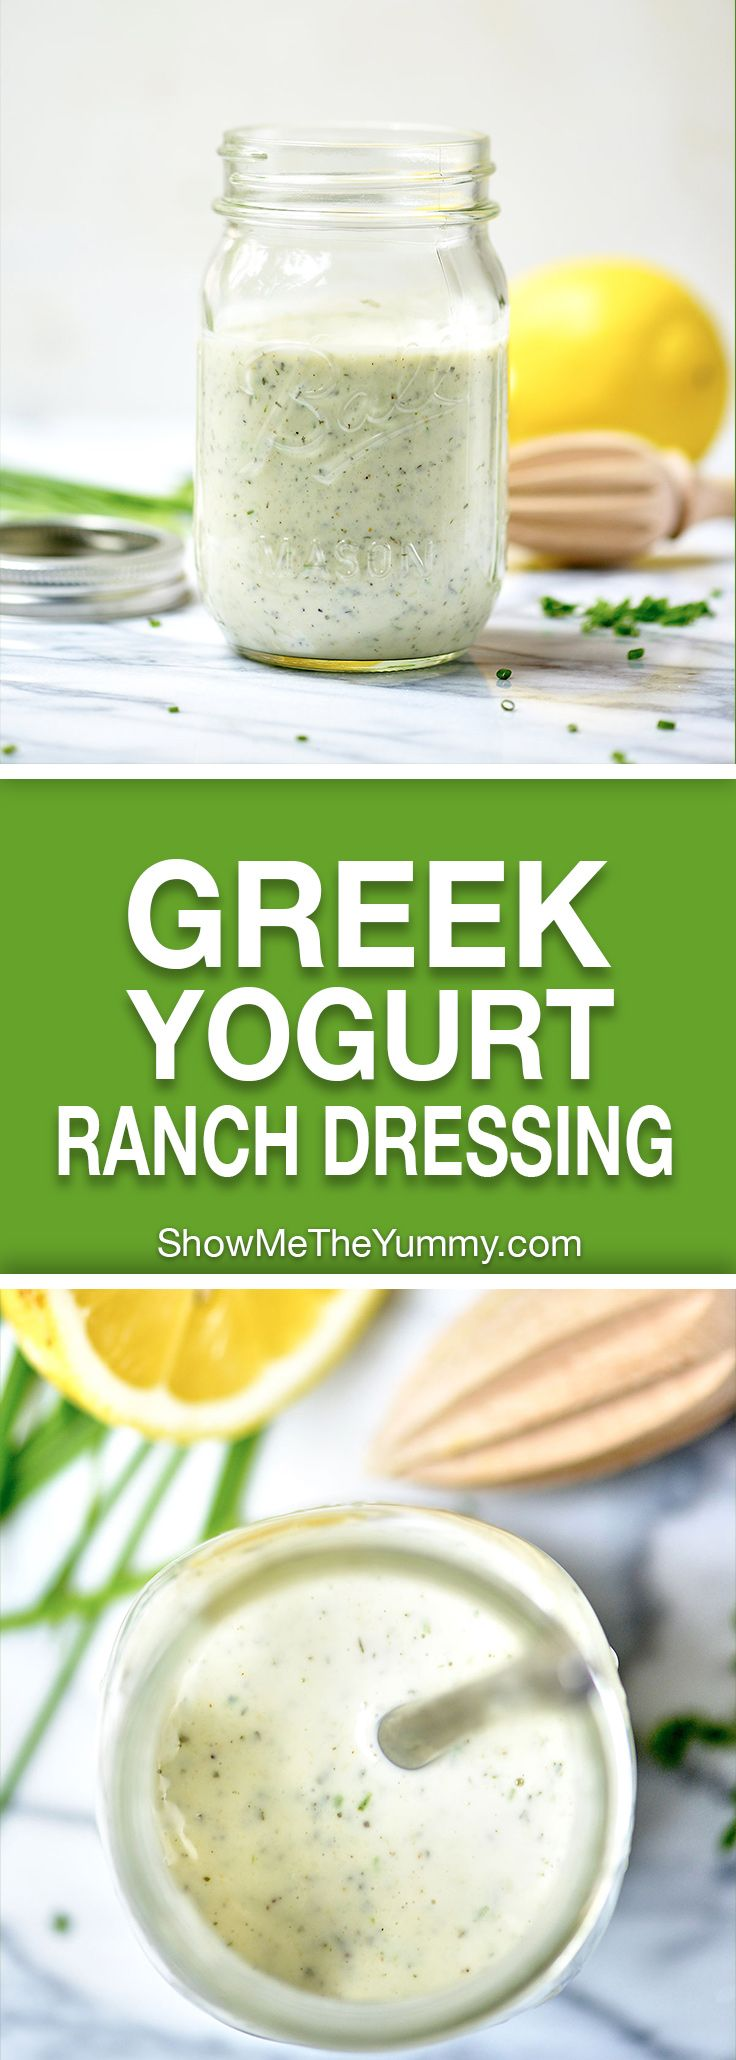 Homemade Greek Yogurt Ranch Dressing – easy, healthy, and delicious! 200 calories for the ENTIRE recipe! showmetheyummy.com #healthy #ranch